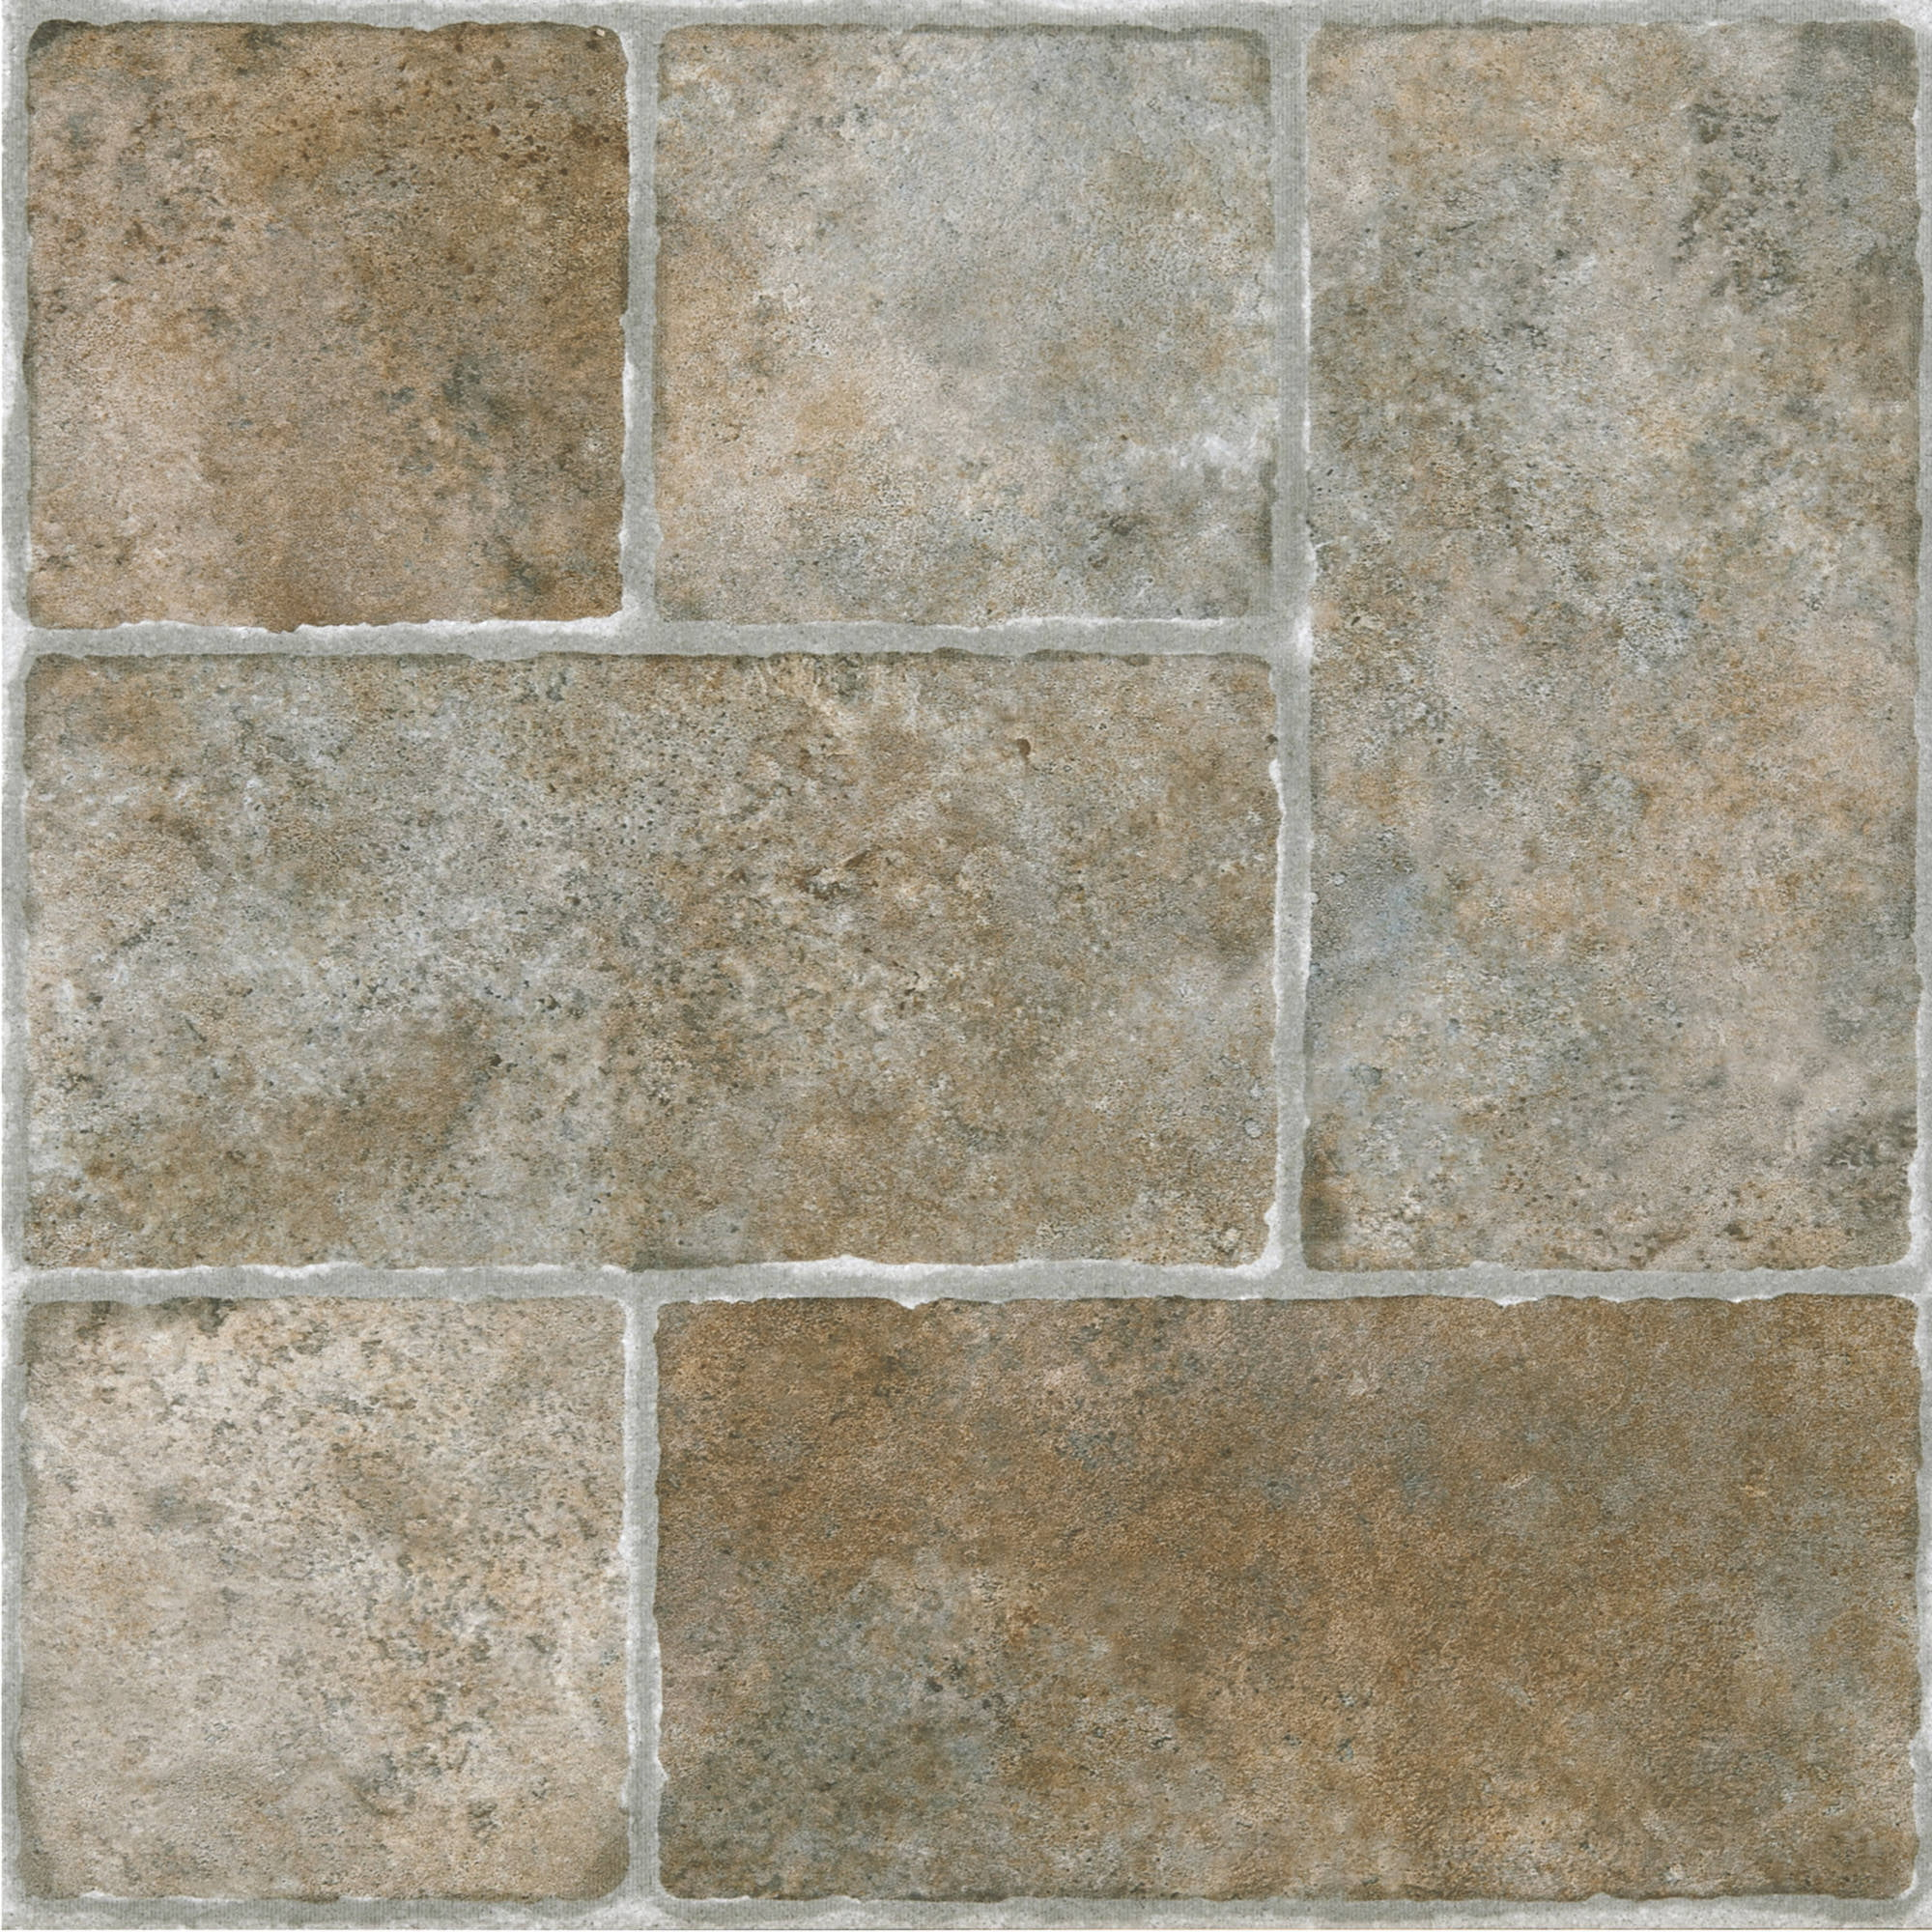 Vinyl brick flooring design decoration nexus quartose granite 12x12 self adhesive vinyl floor tile 20 tiles20 sq dailygadgetfo Image collections